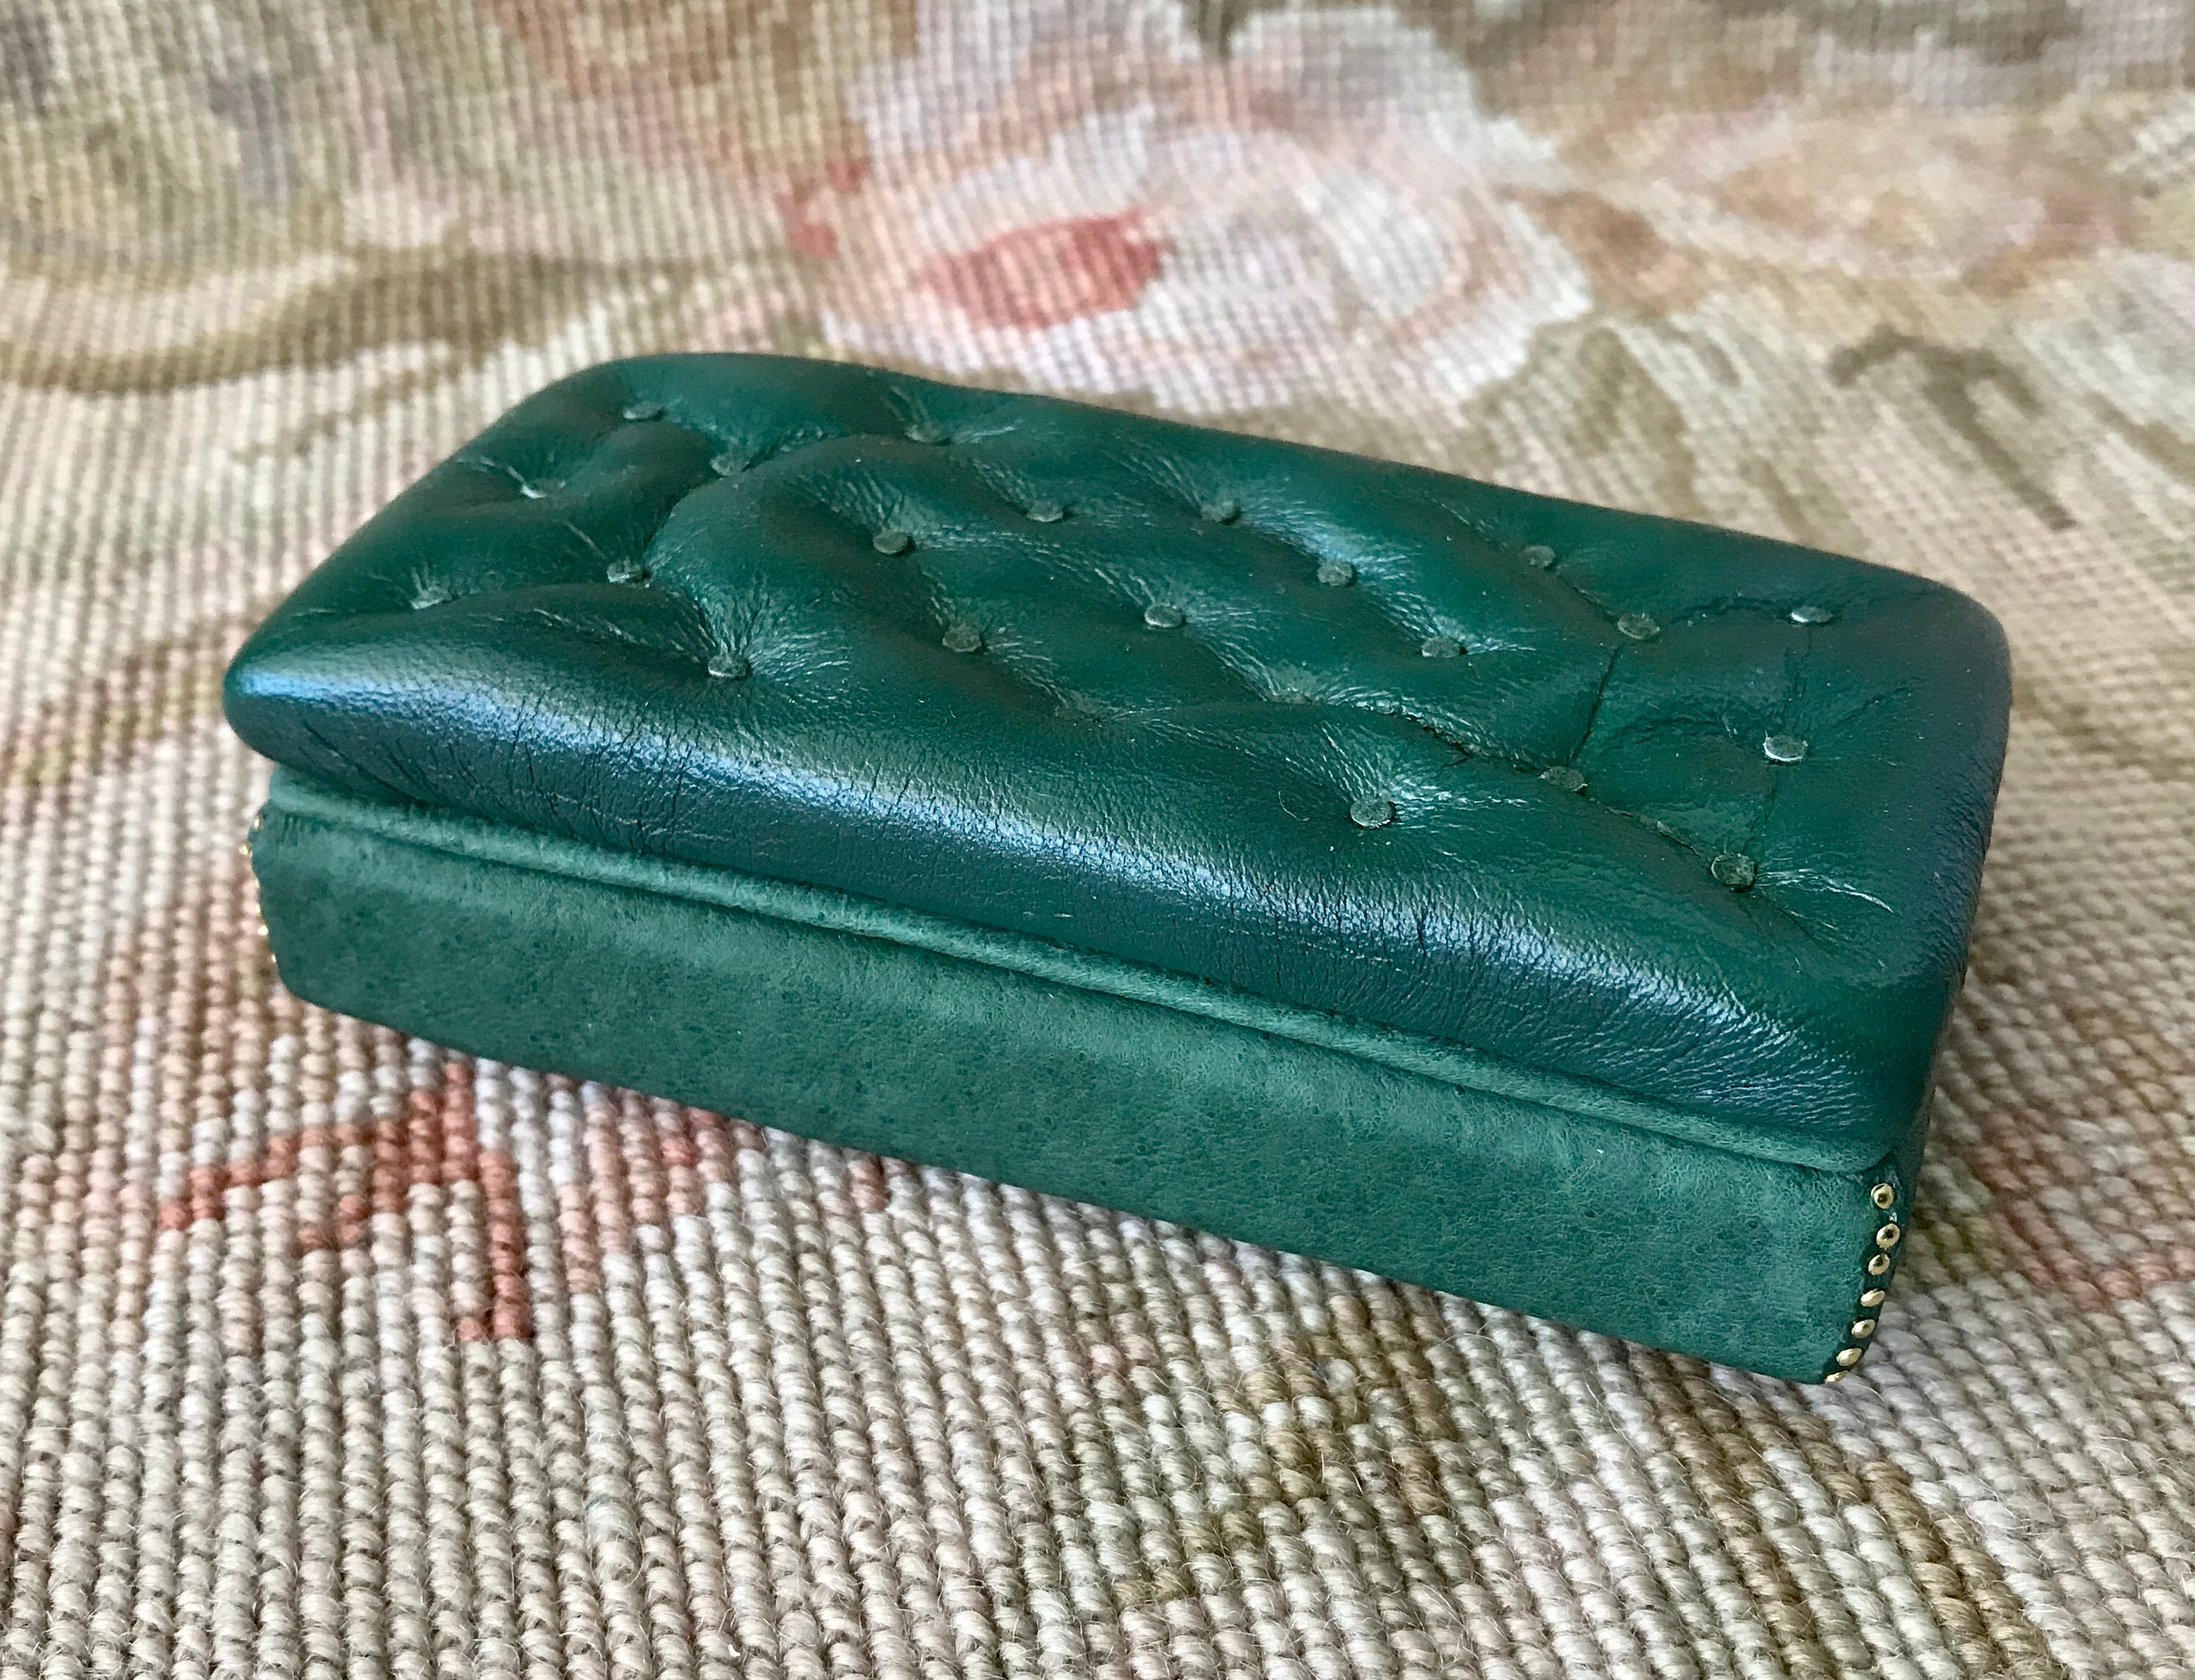 Stool Ottoman Seat Bench Green Leather  1:12 Dollhouse Miniature